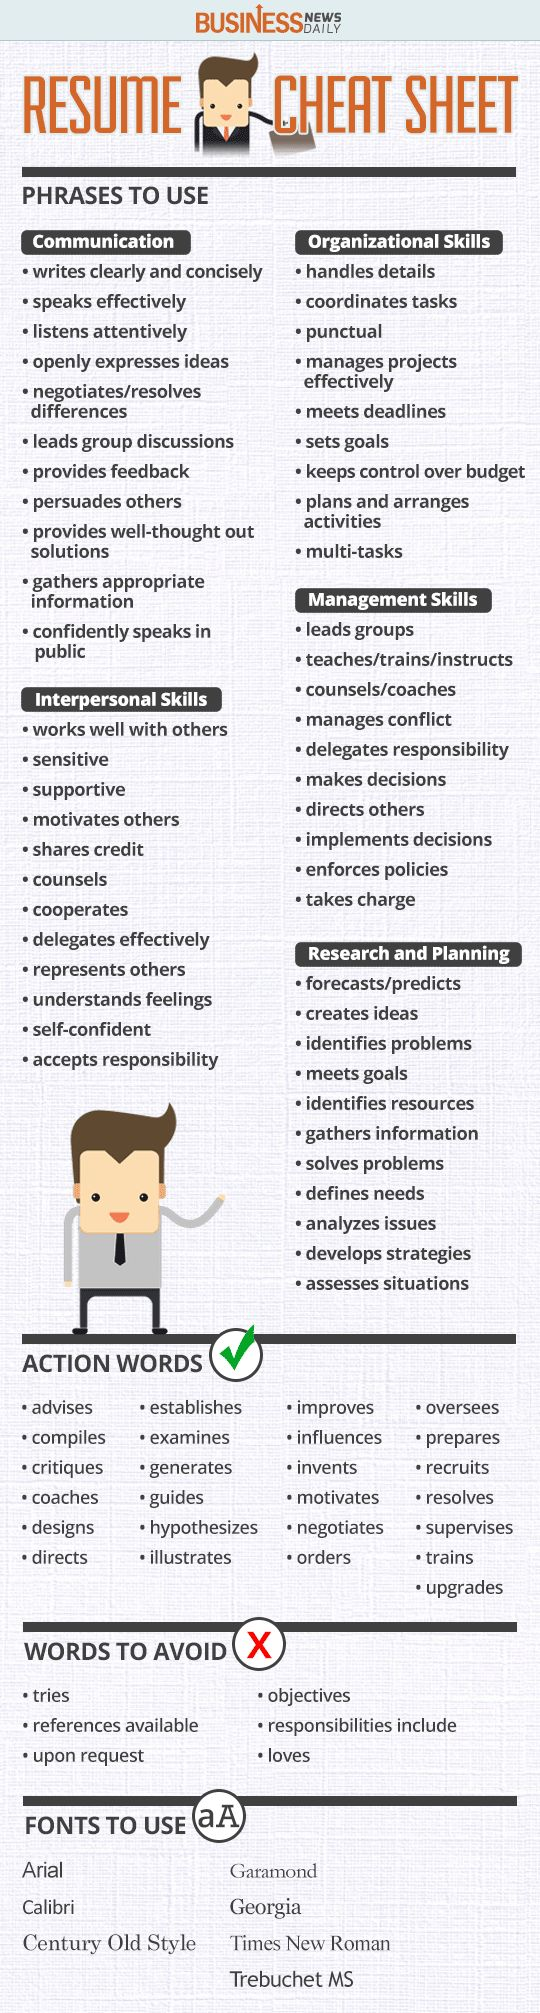 Opposenewapstandardsus  Prepossessing  Ideas About Resume On Pinterest  Cv Format Resume Cv And  With Licious Resume Cheat Sheet Infographic Andrews Almost Done With A Complete Unit On Employment Which With Awesome Start A Resume Also Unc Resume Builder In Addition Resume Catch Phrases And Head Teller Resume As Well As Simple Sample Resumes Additionally Best Resume Advice From Pinterestcom With Opposenewapstandardsus  Licious  Ideas About Resume On Pinterest  Cv Format Resume Cv And  With Awesome Resume Cheat Sheet Infographic Andrews Almost Done With A Complete Unit On Employment Which And Prepossessing Start A Resume Also Unc Resume Builder In Addition Resume Catch Phrases From Pinterestcom